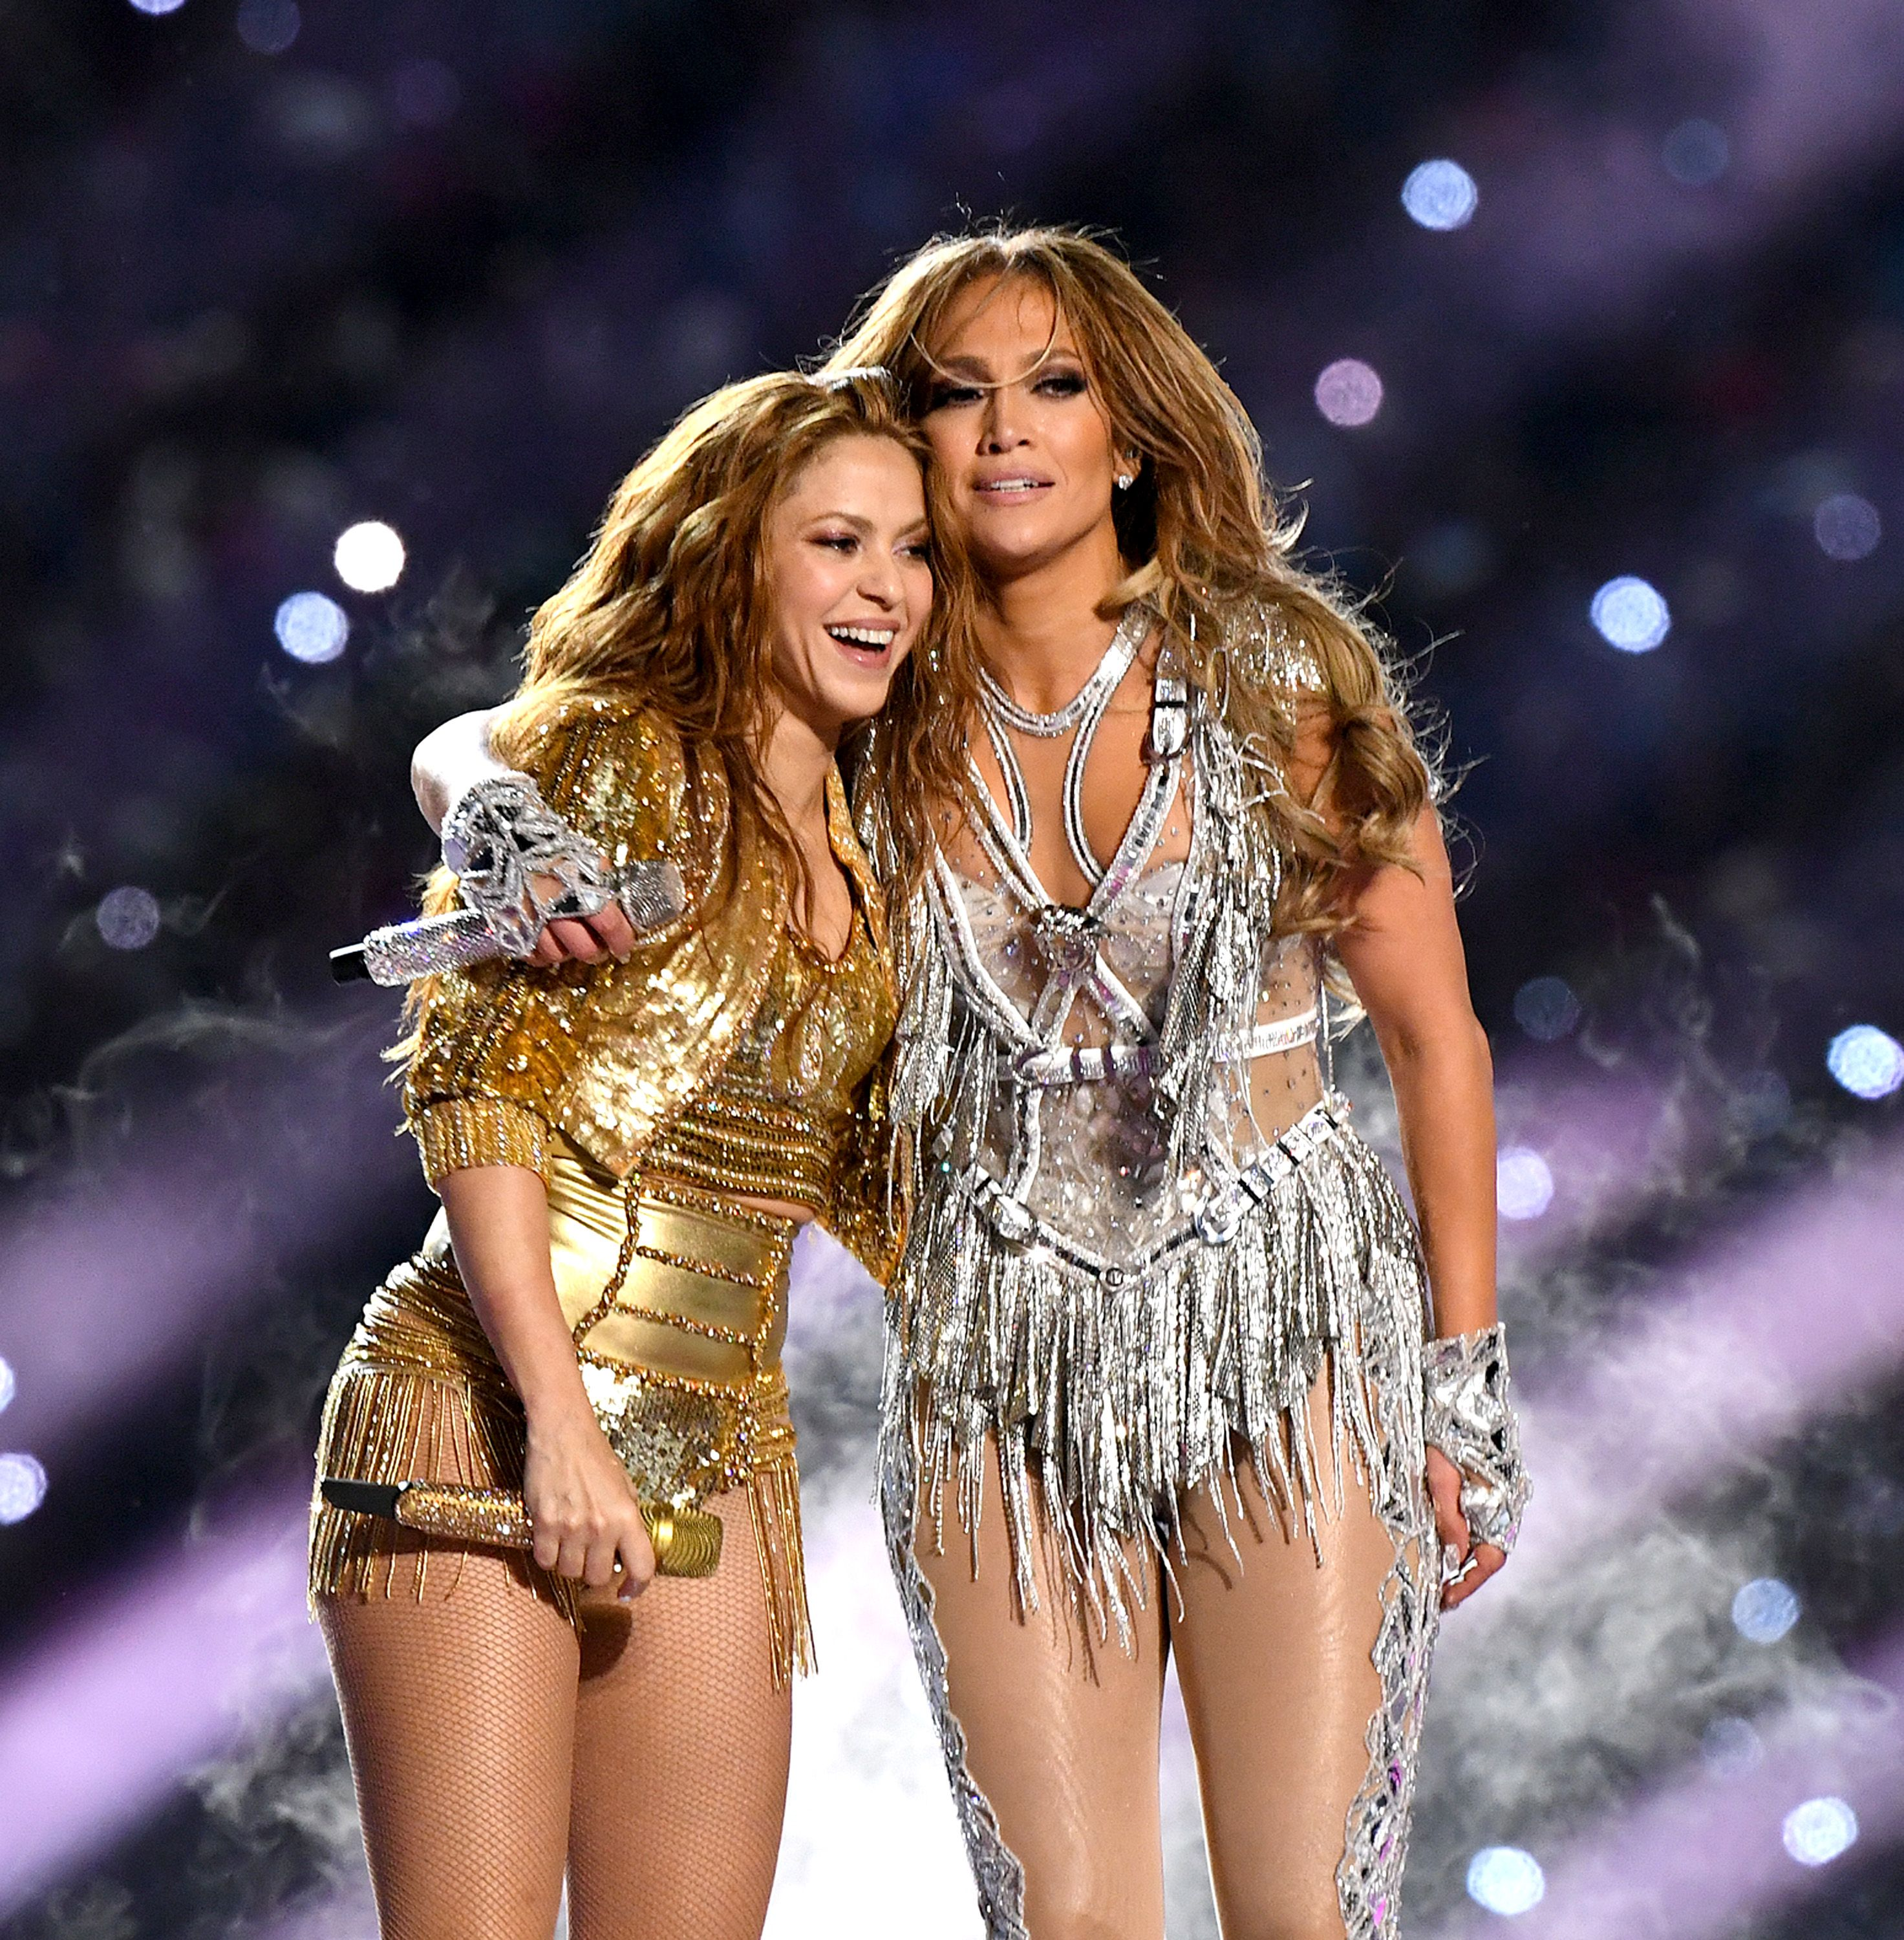 Shakira and Jennifer Lopez onstage at the Pepsi Super Bowl LIV Halftime Show in February in Miami, Florida | Source: Getty Images